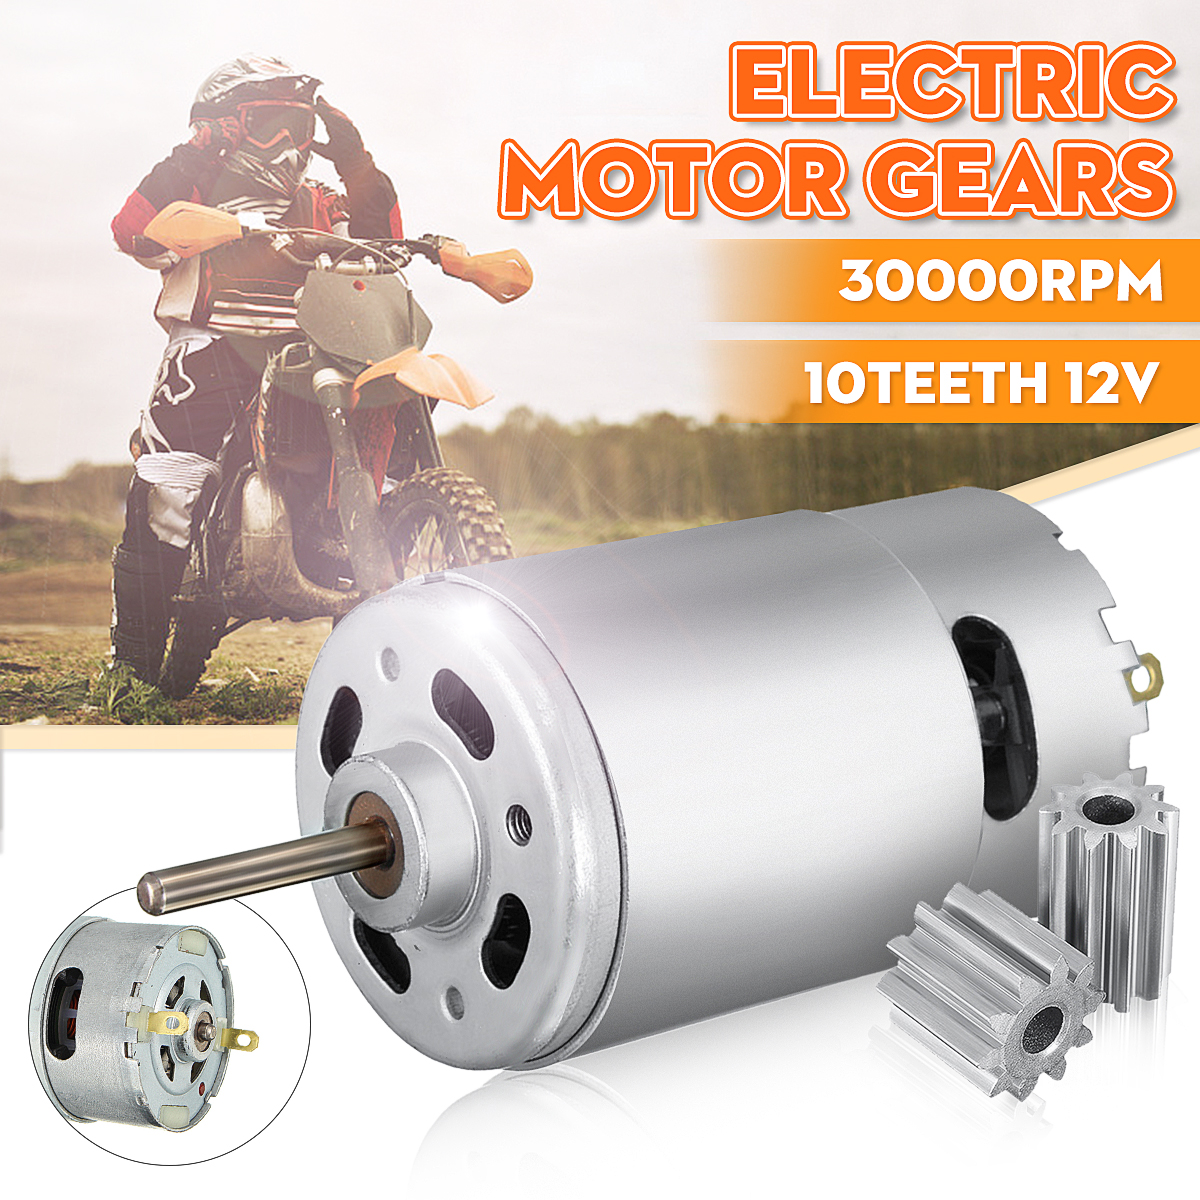 DC Motor <font><b>12V</b></font> 30000 RPM for Children Electric Car,RC Ride, Baby Car Electric Motor <font><b>RS550</b></font> Gearbox 10 teeth Engine Hot Sale image